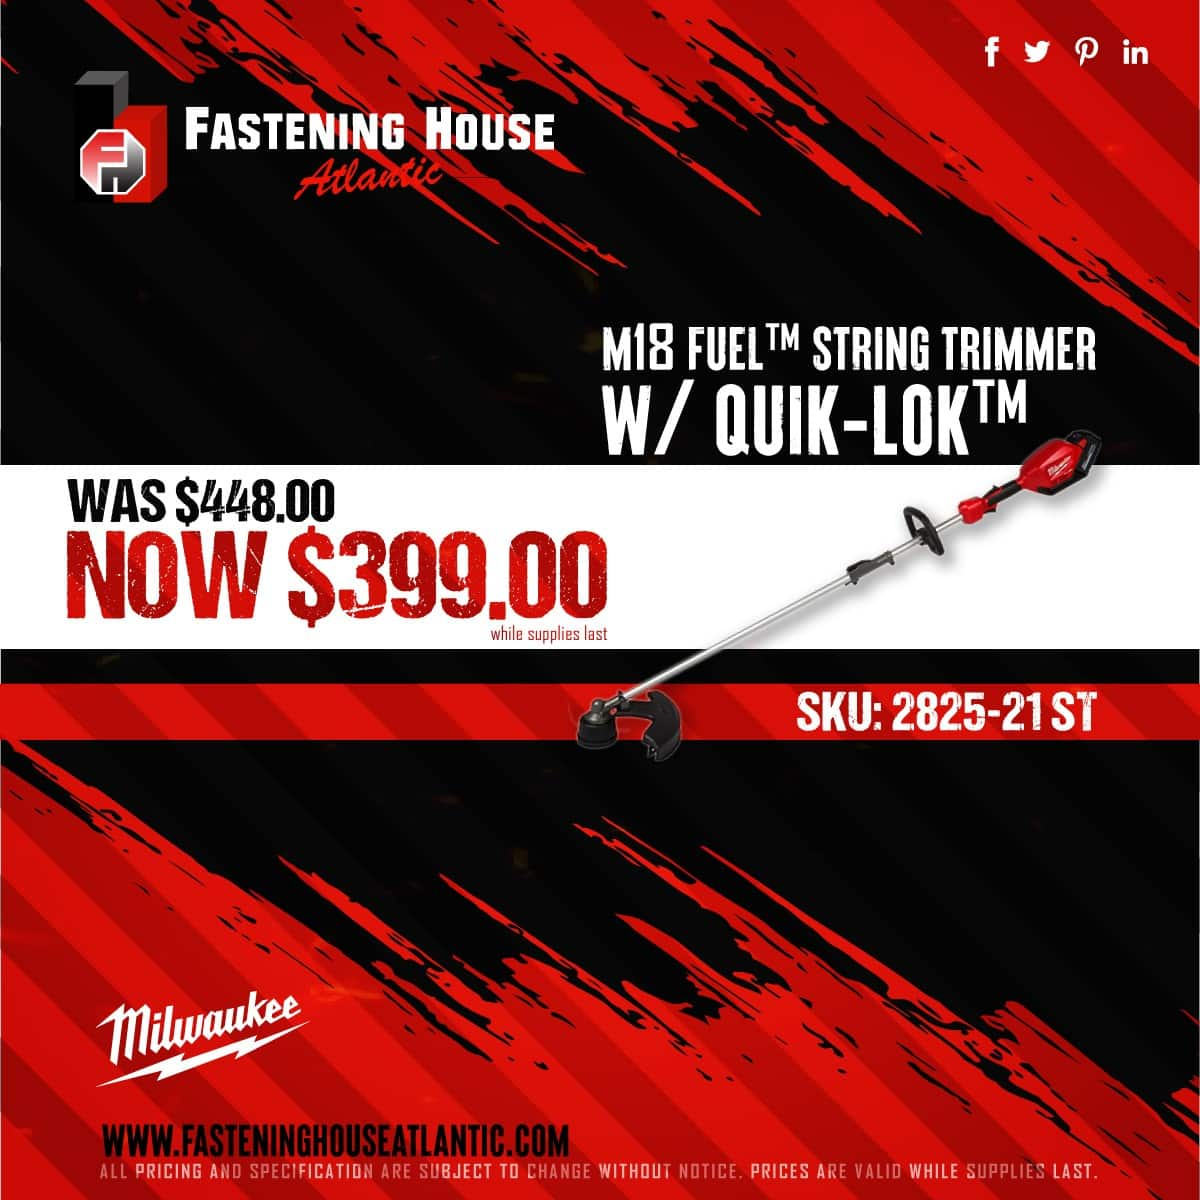 M18 FUEL™ STRING TRIMMER W/ QUIK-LOK™ (while supplies last)